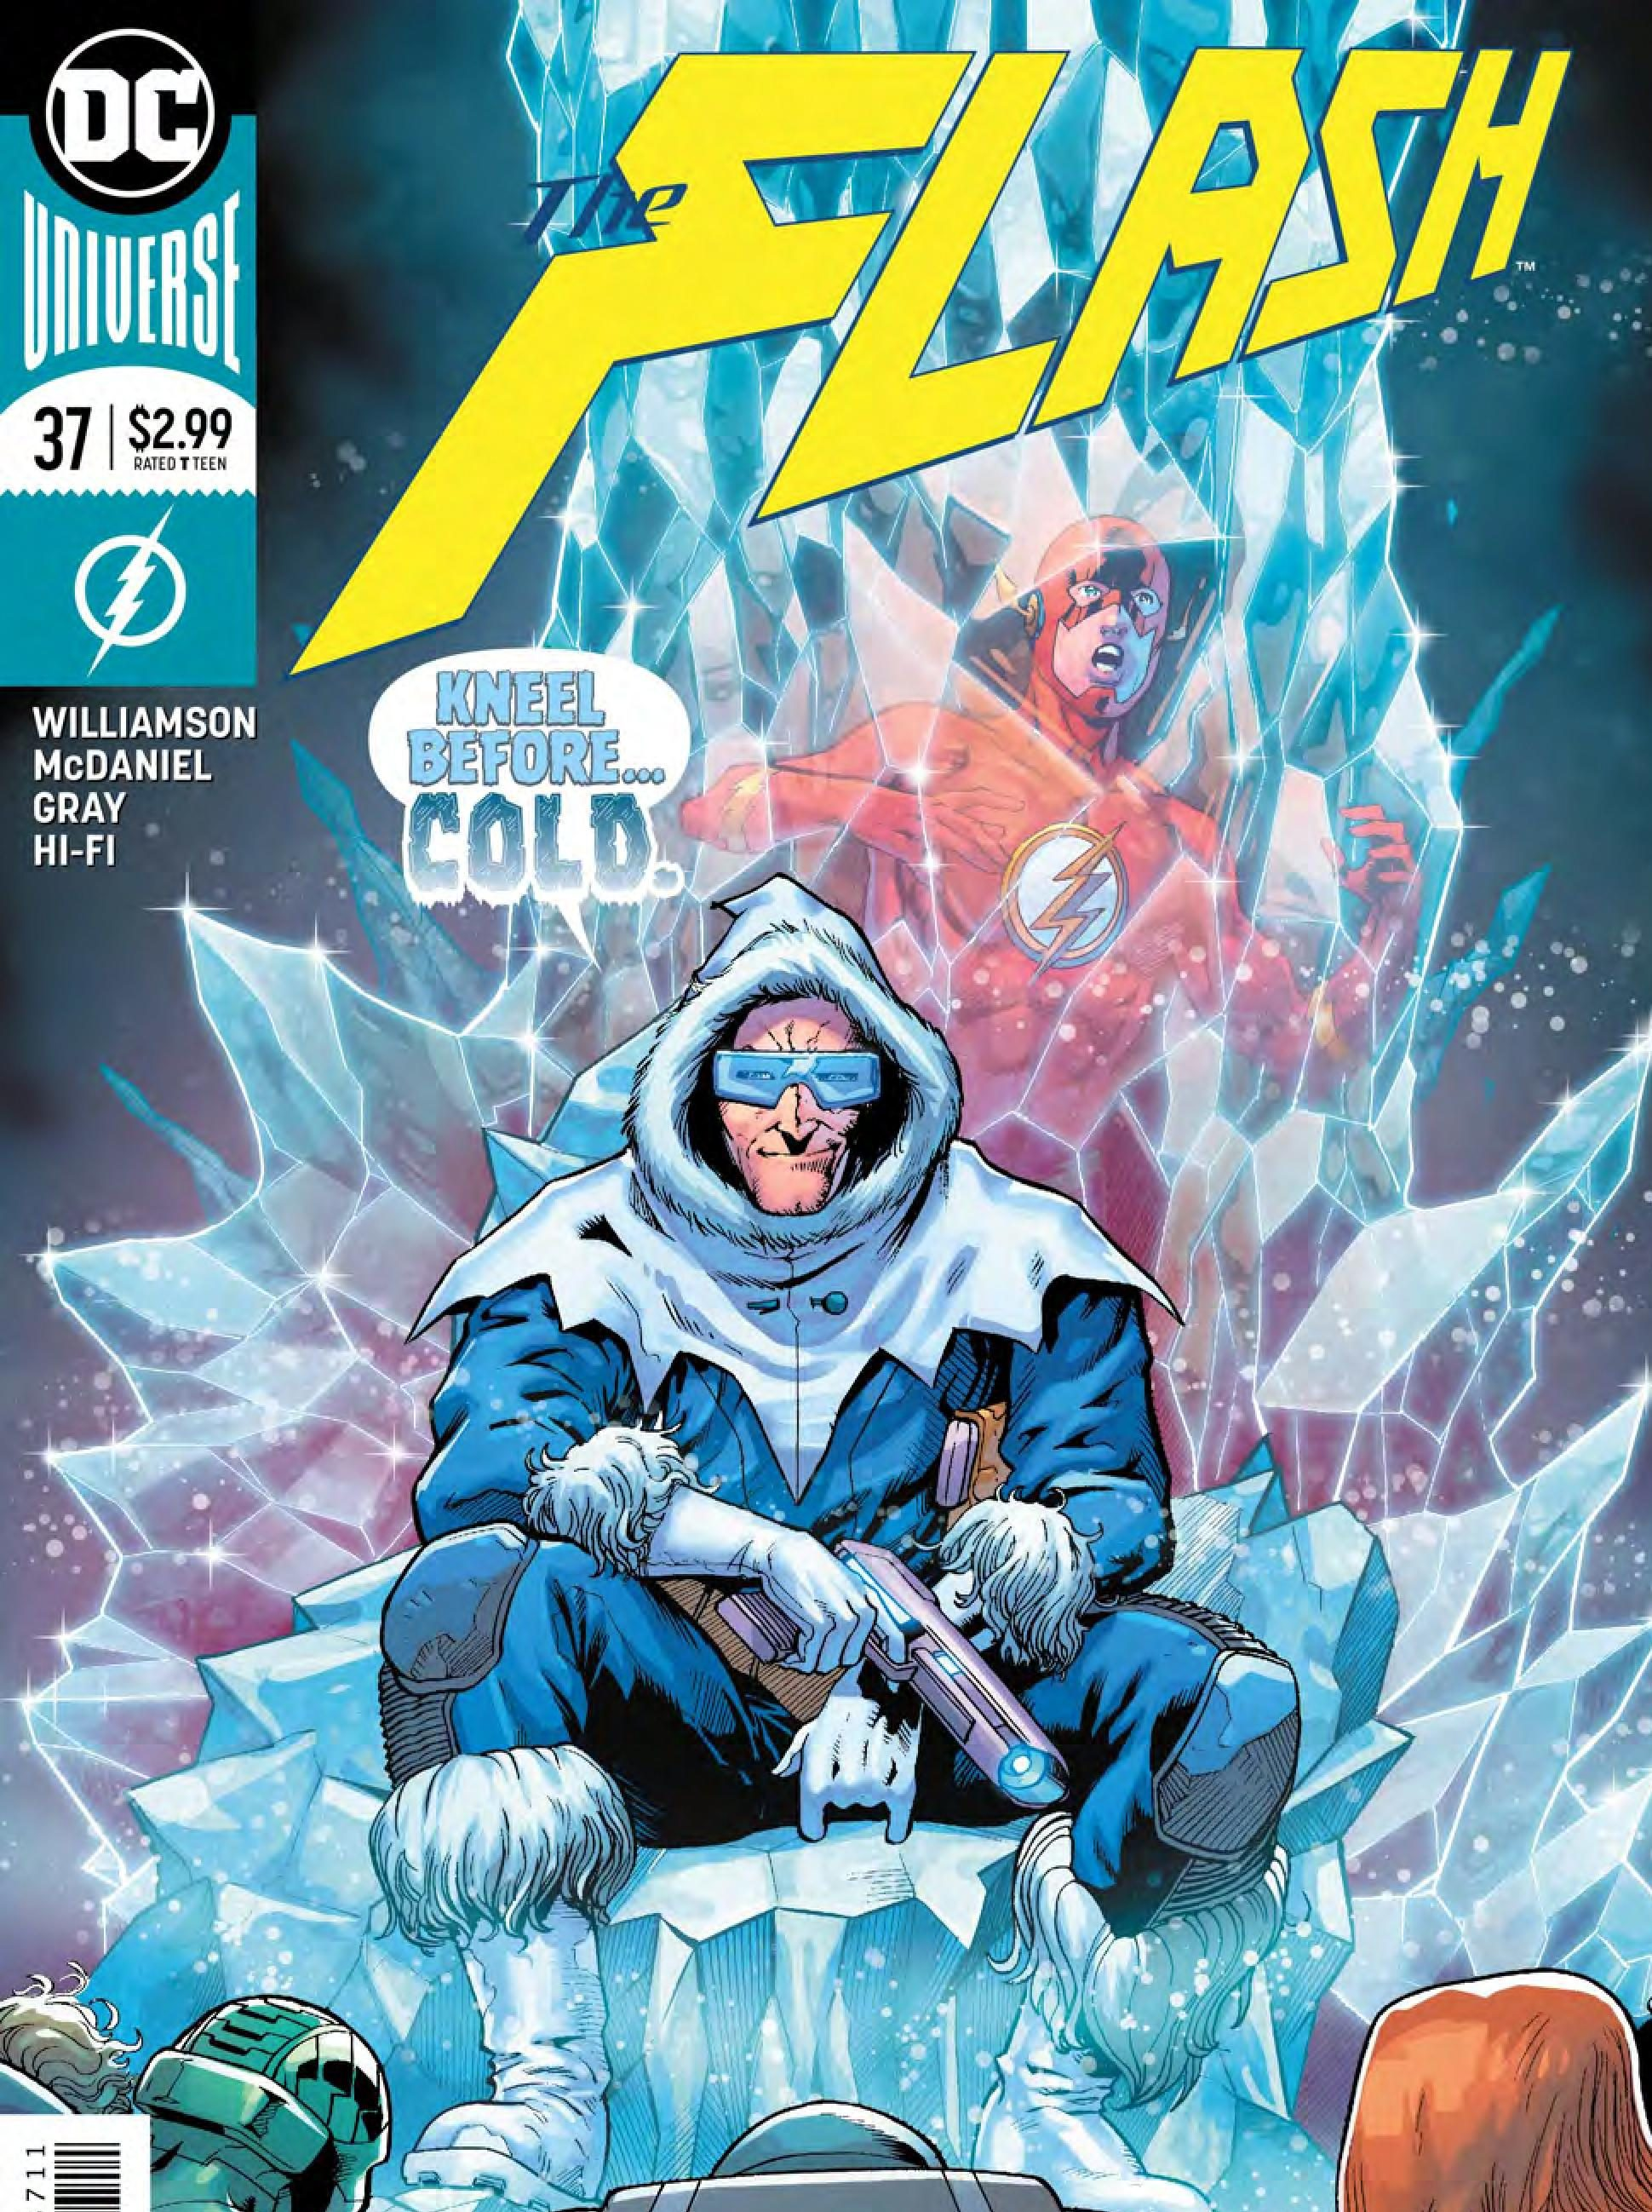 The Flash #37 Review